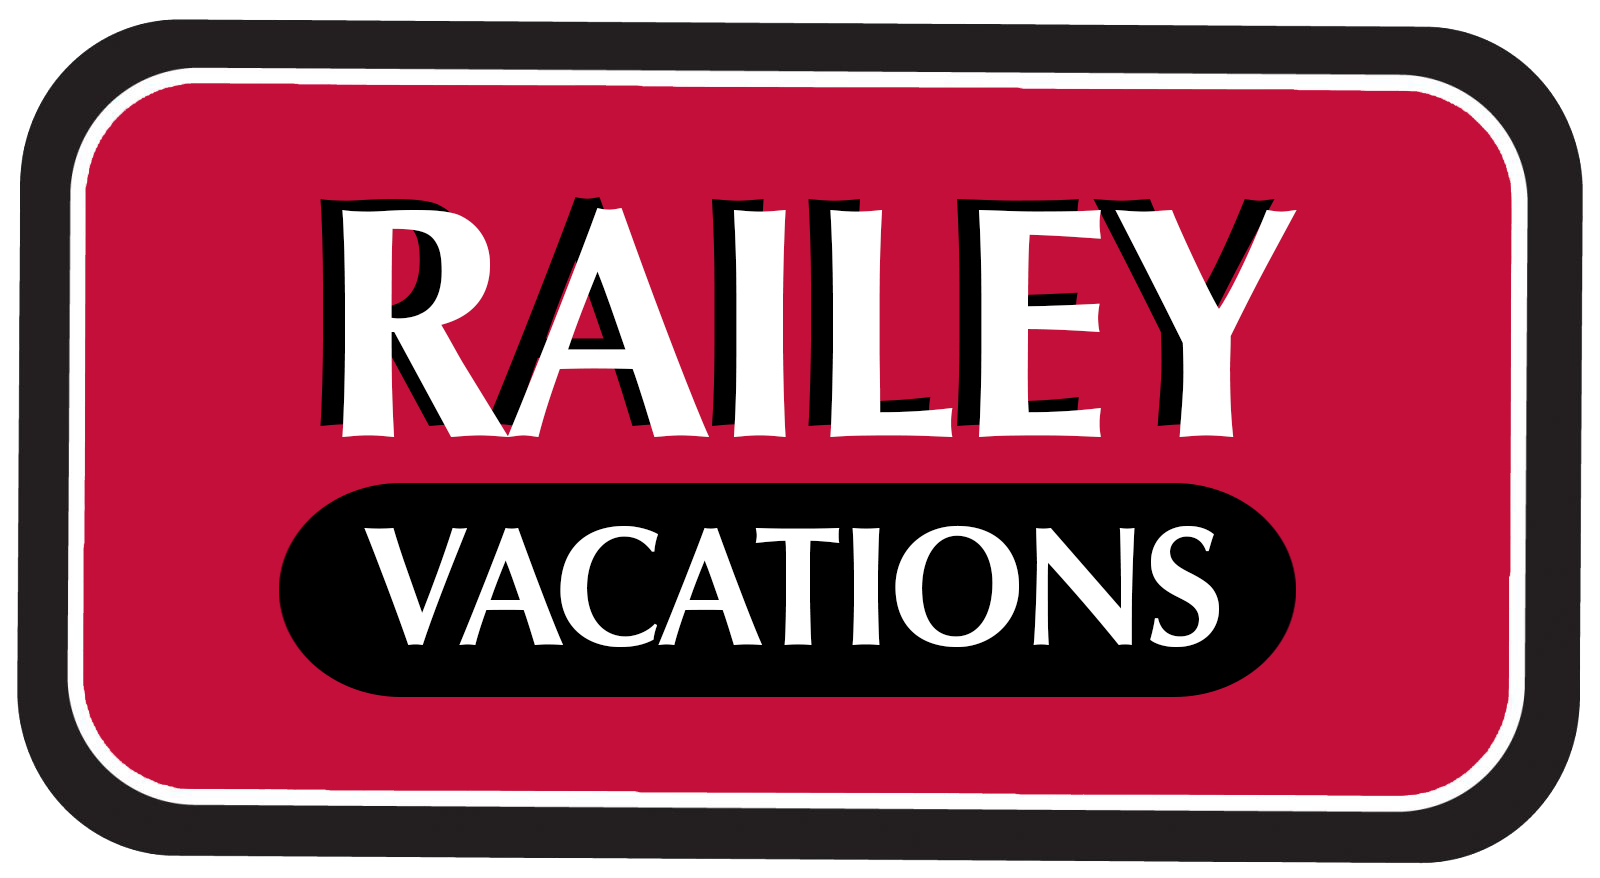 Railey Vacations